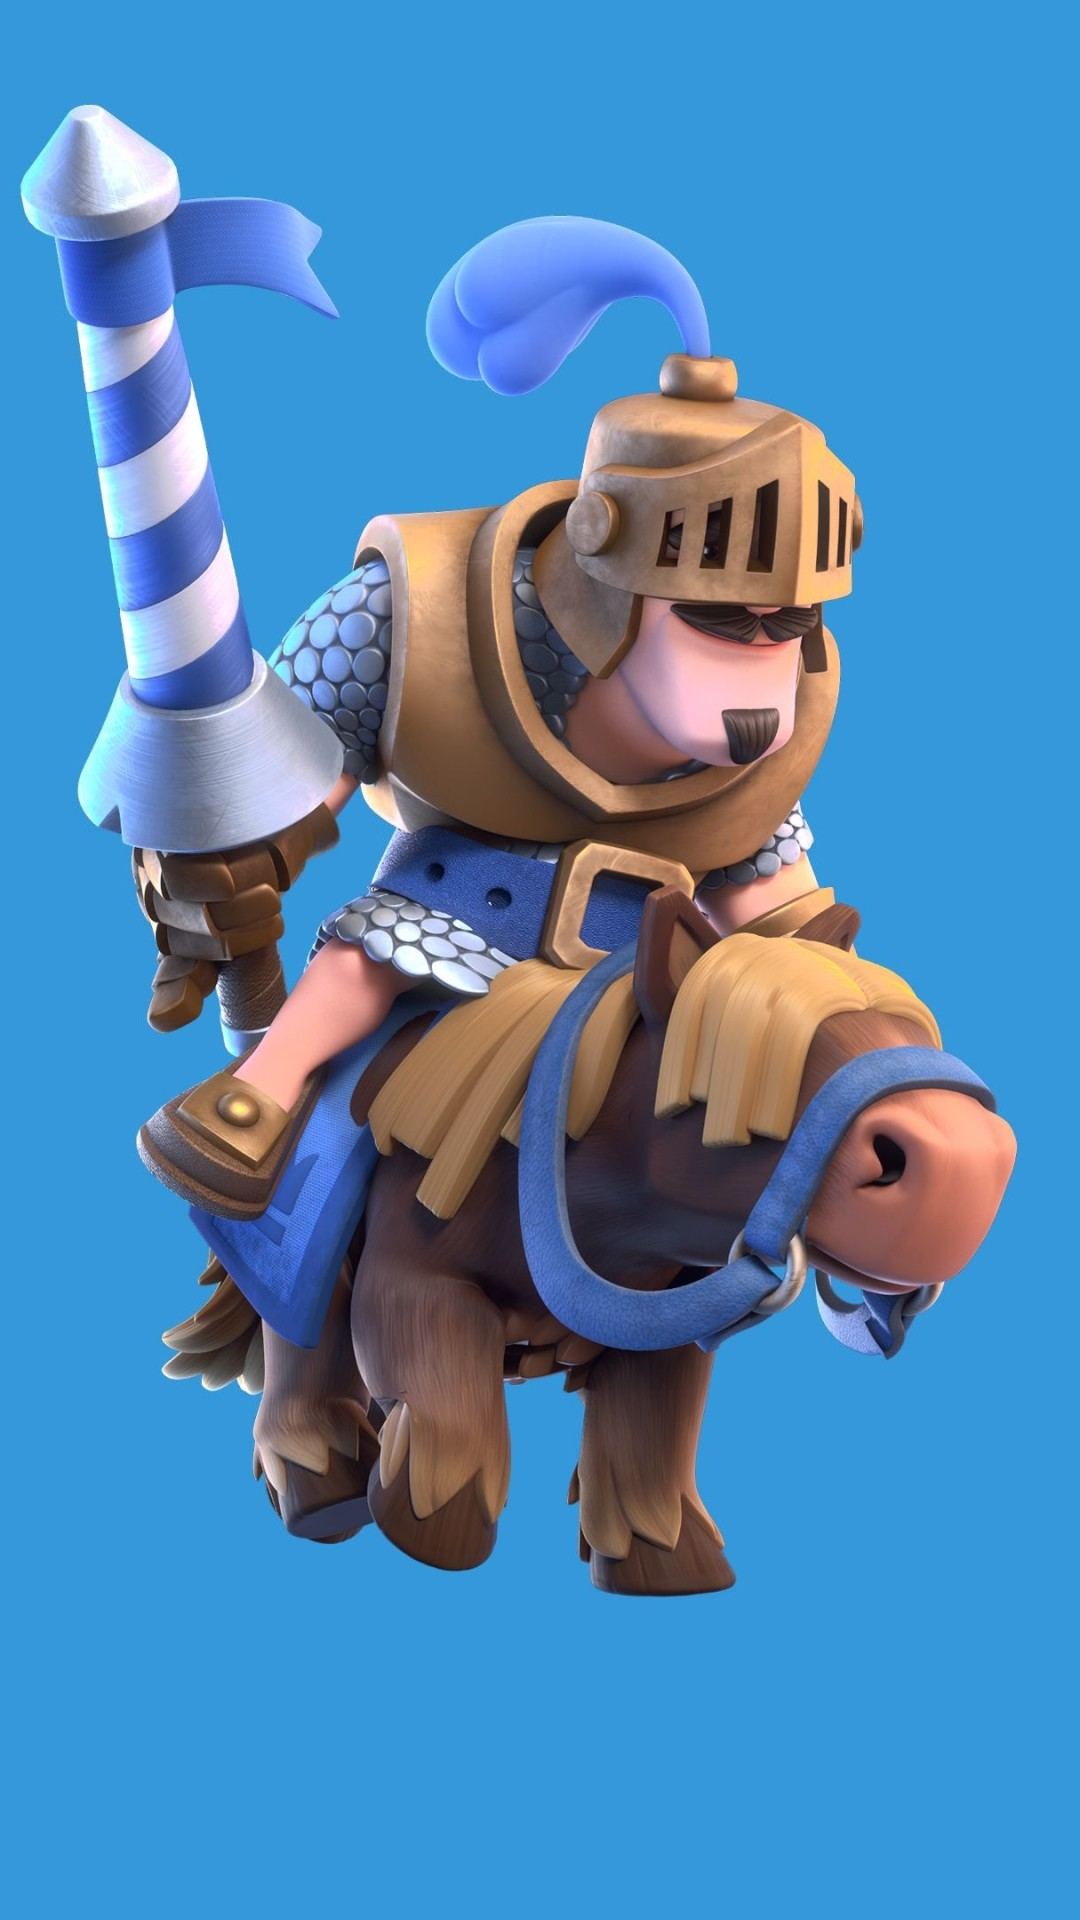 1080x1920 Video Game Clash Royale. Wallpaper 693832